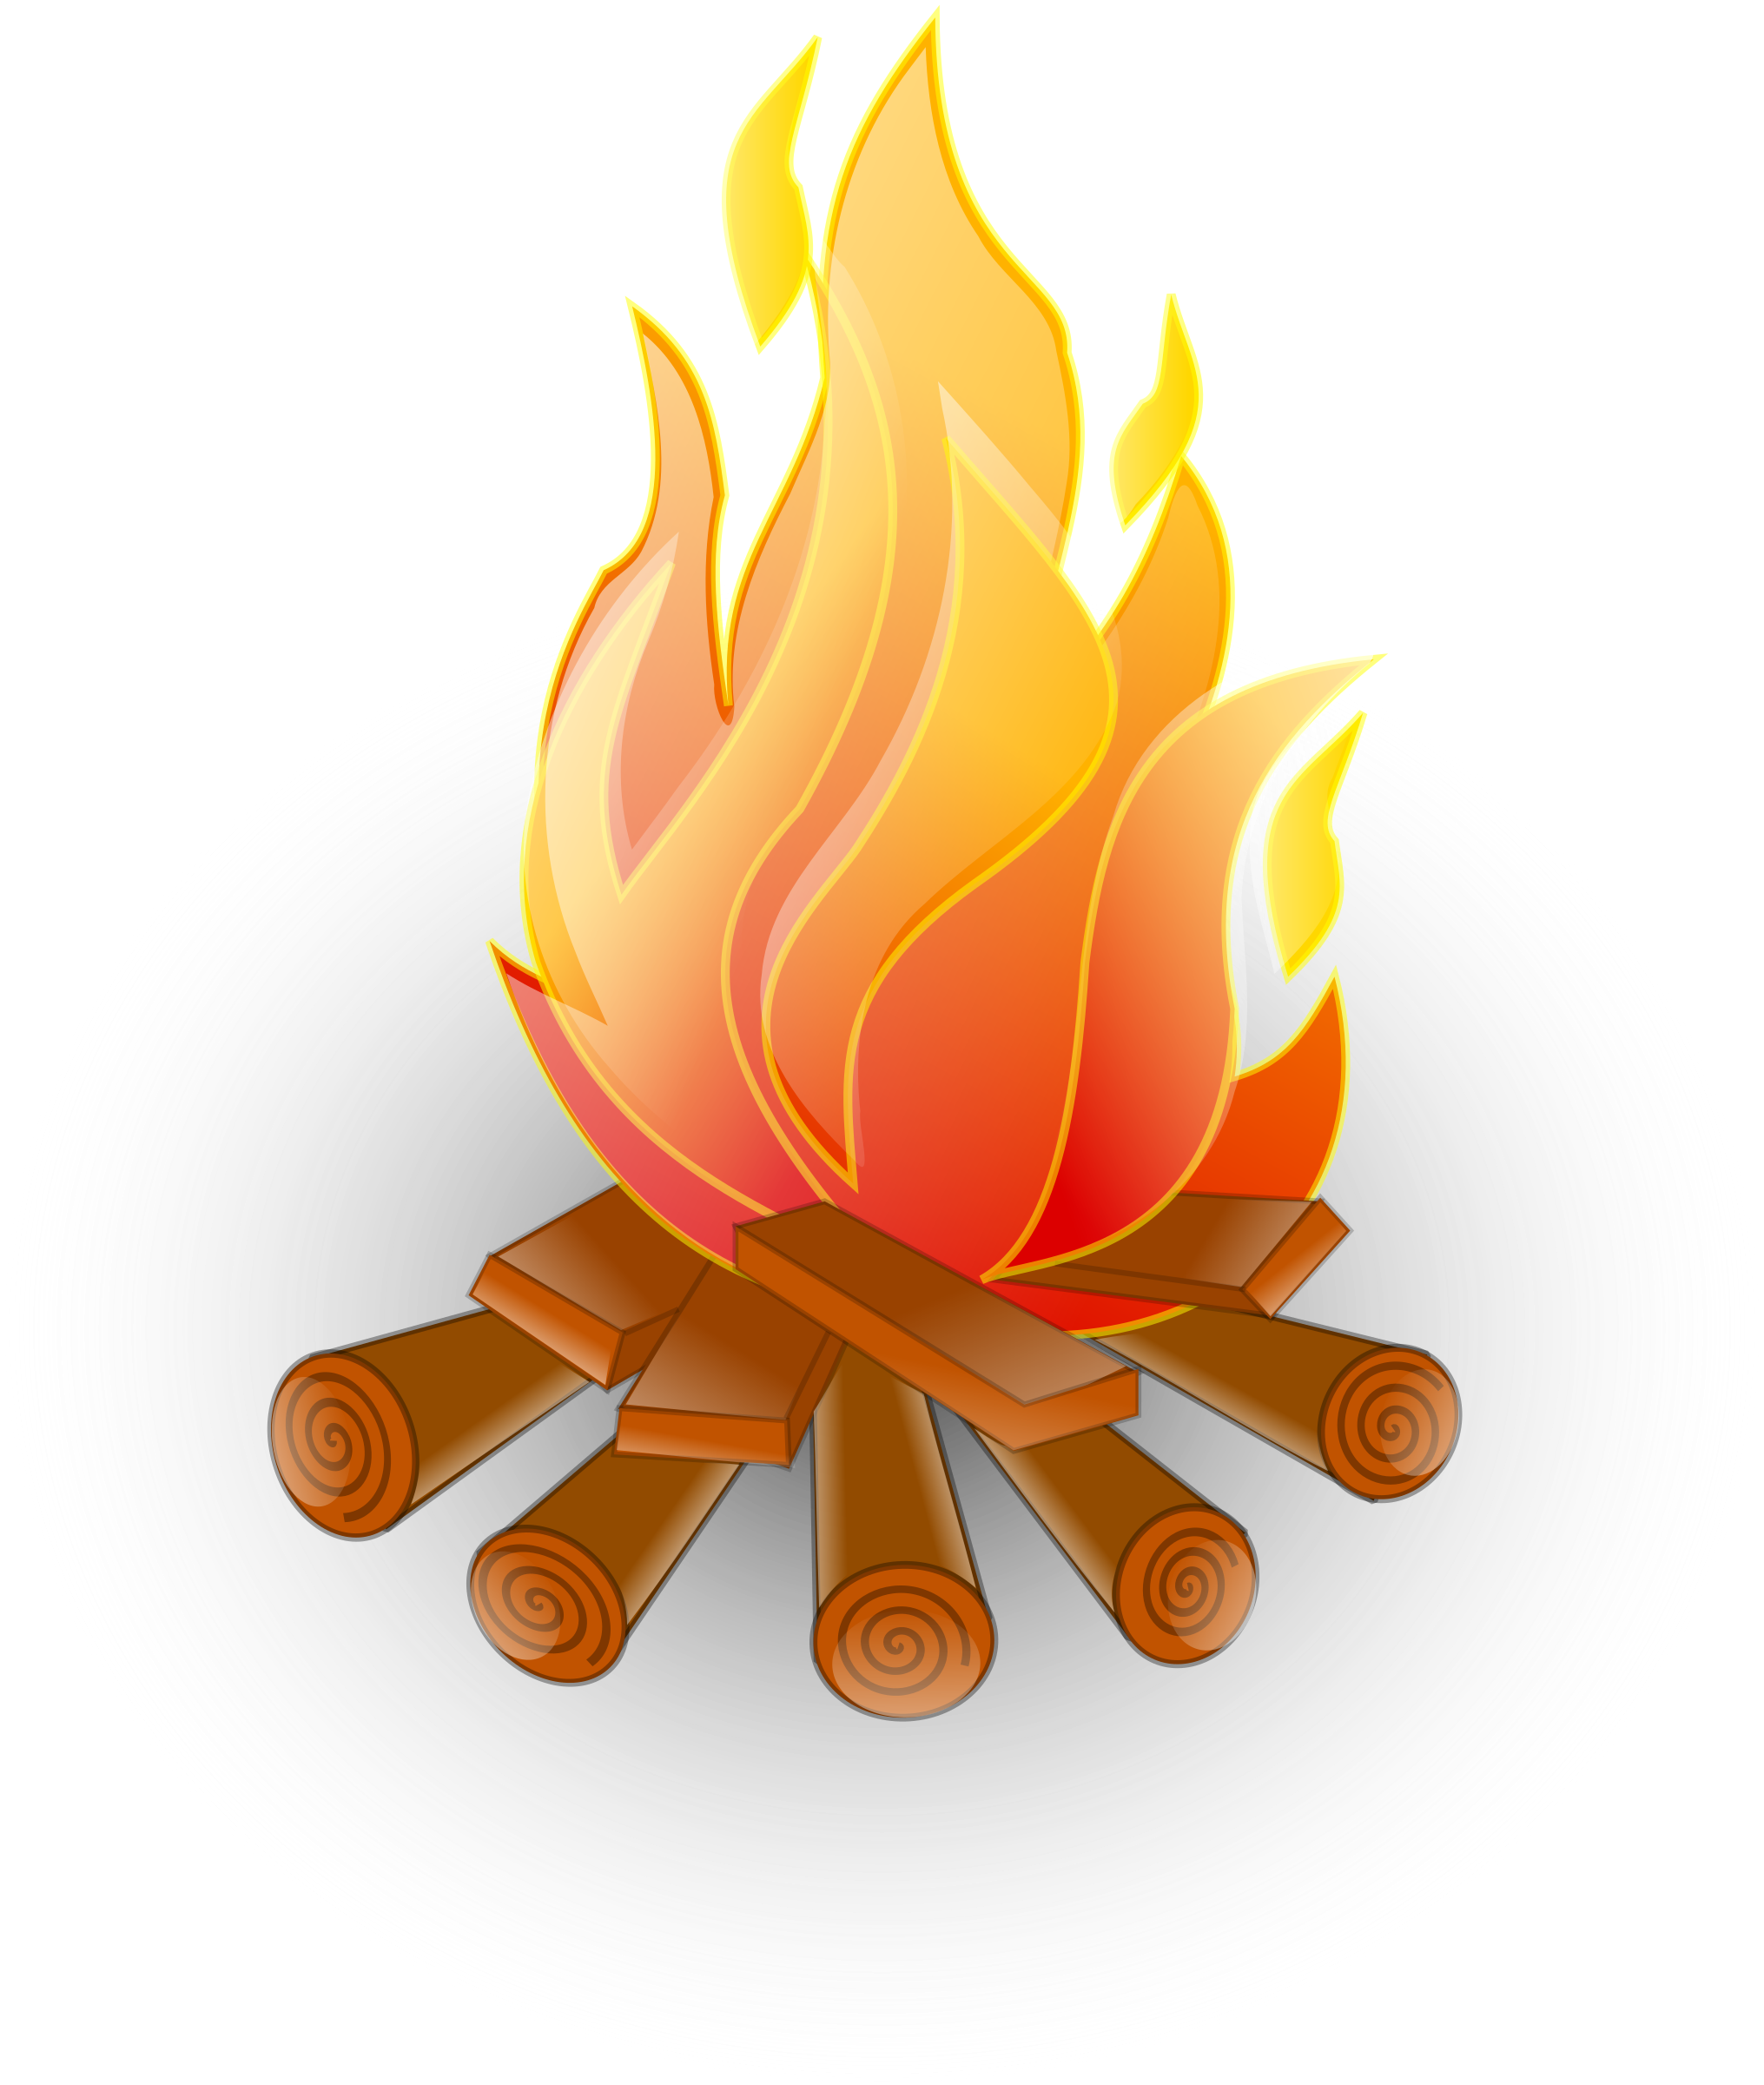 Collection of free gire. Flaming maltese cross clipart